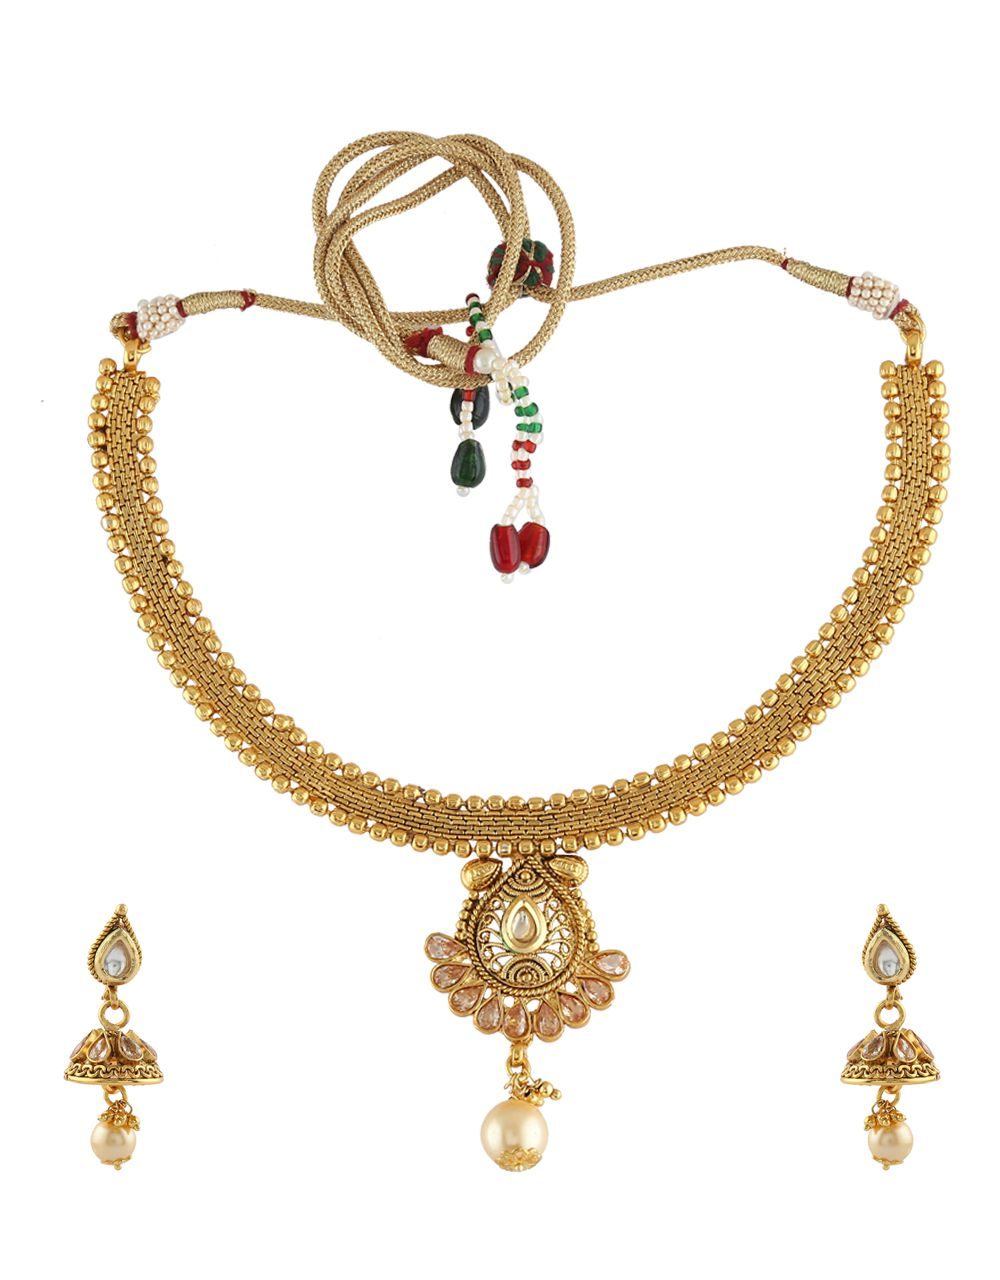 Anuradha Art Designer Droplet Shape Styled With Stones And Hanging Pearl Beads Traditional Necklace Set for Women/Girls